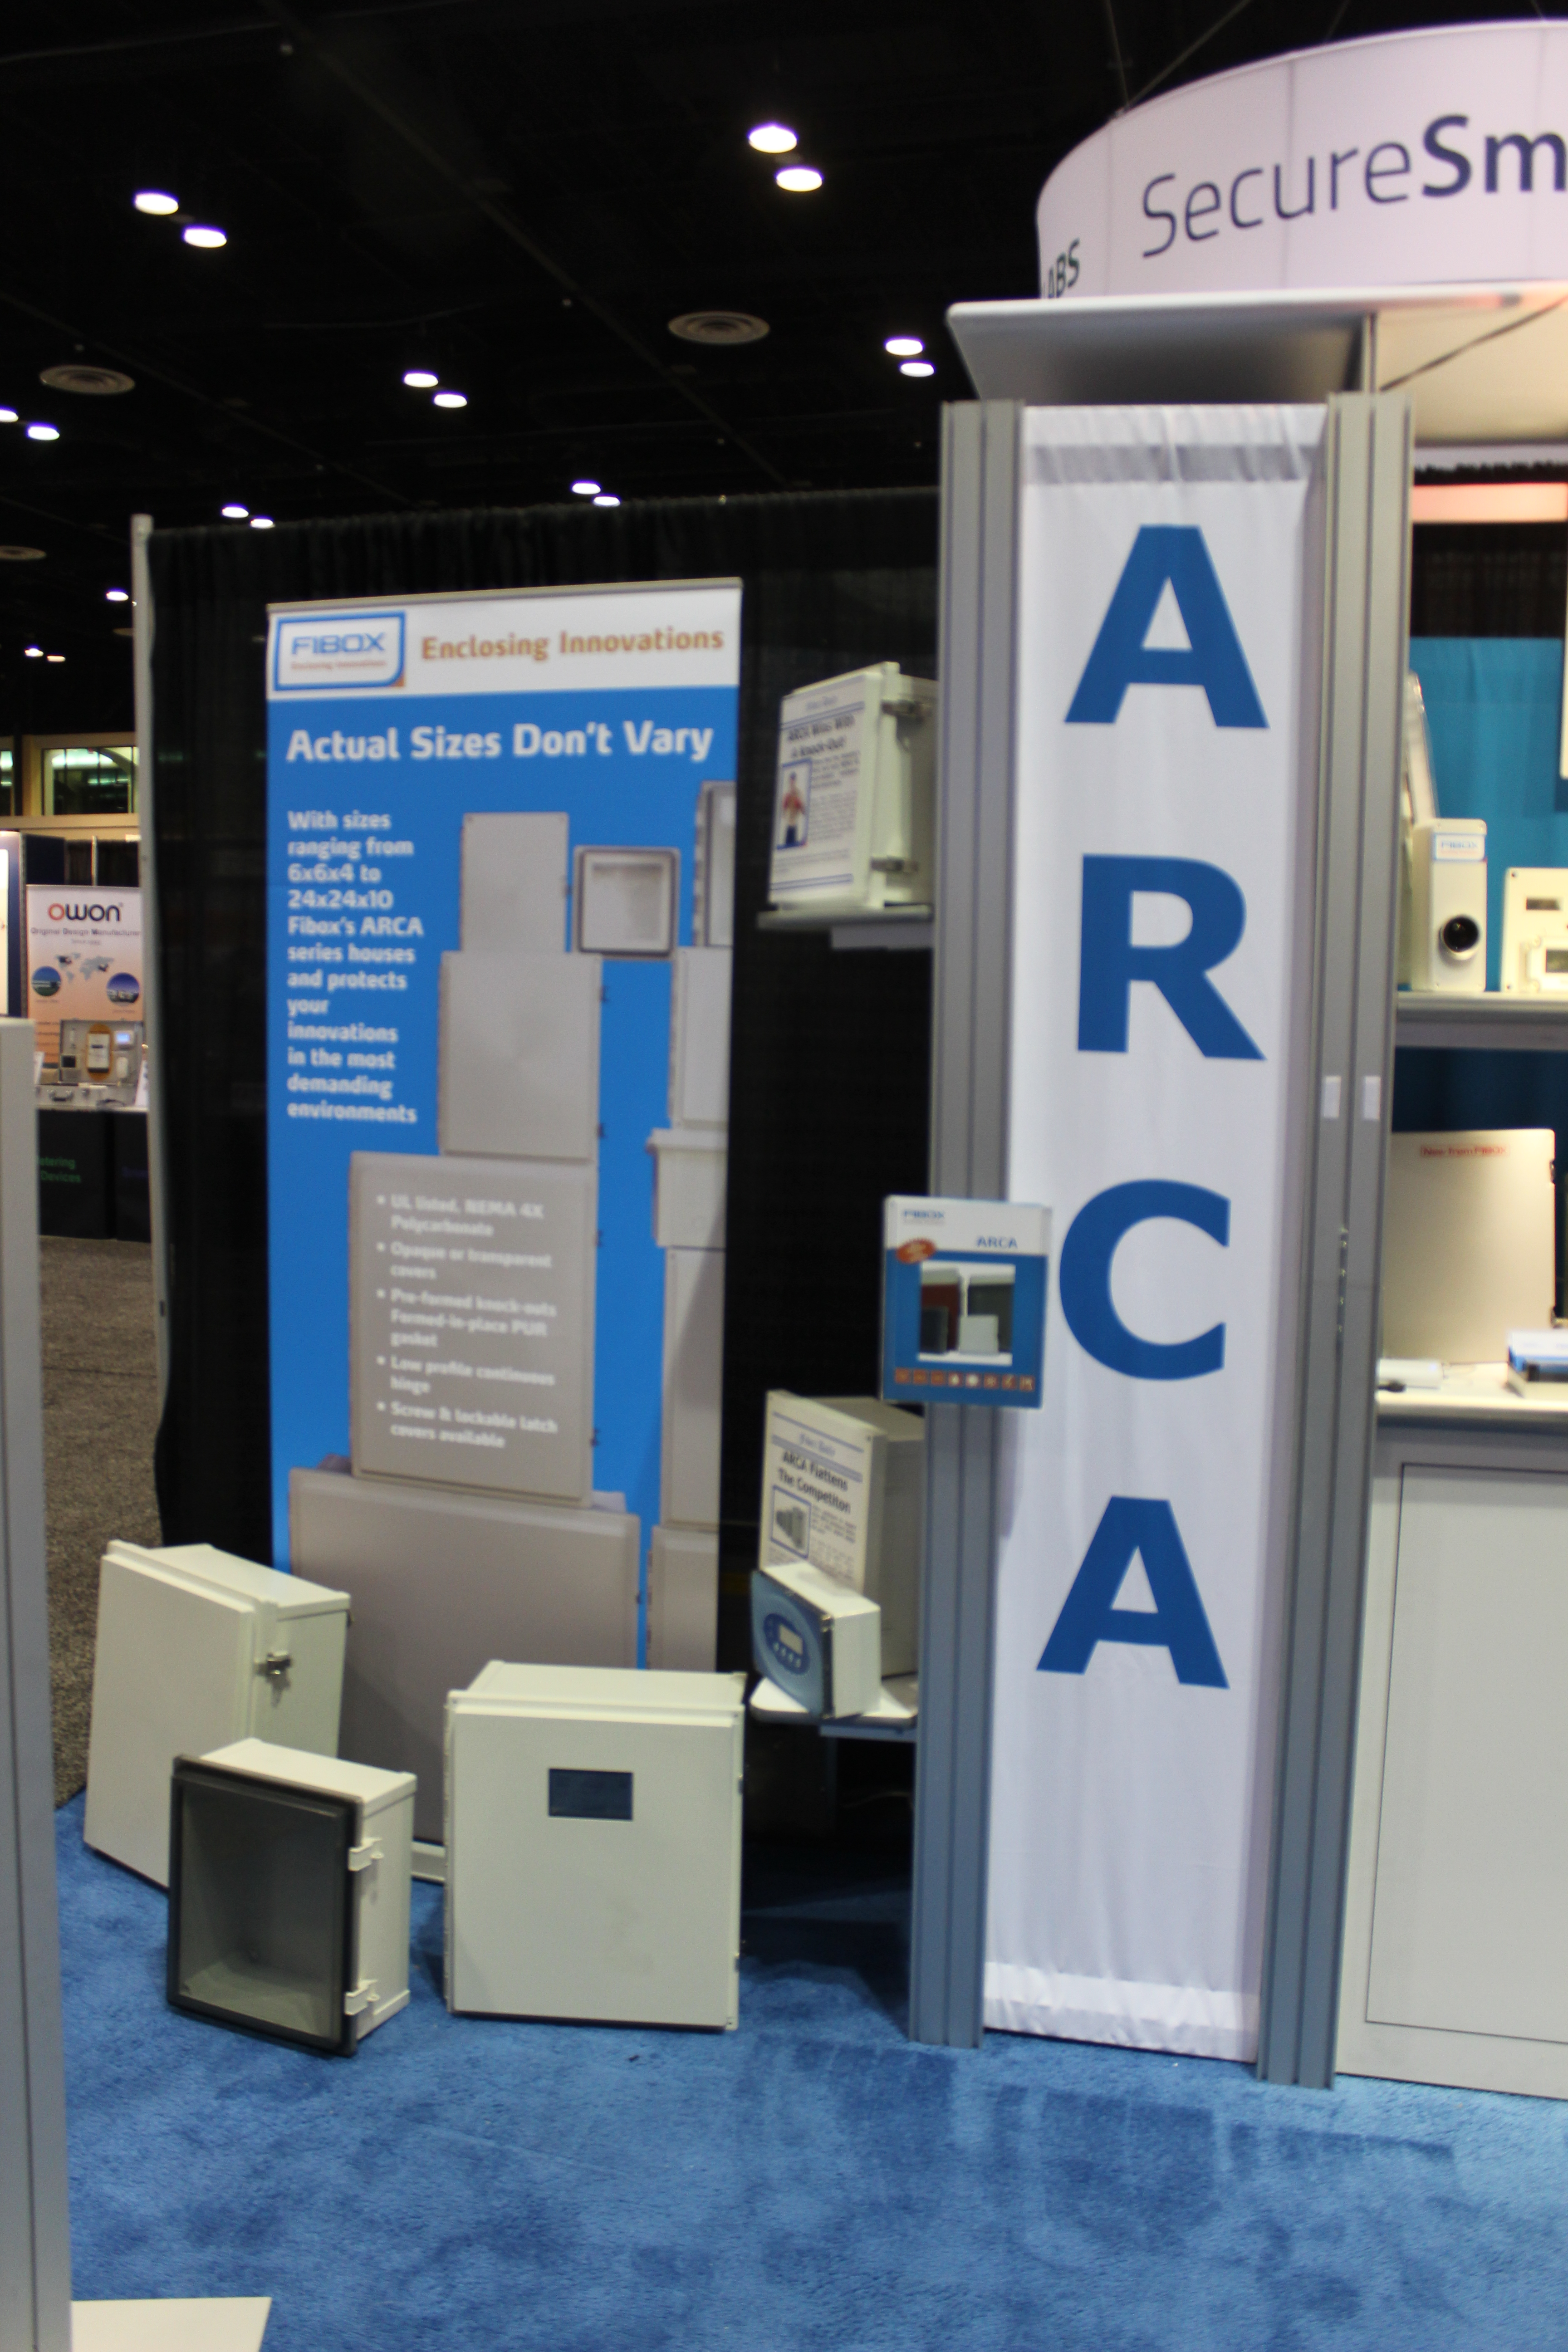 ARCA and ARCA IEC are the largest polycarb boxes out there